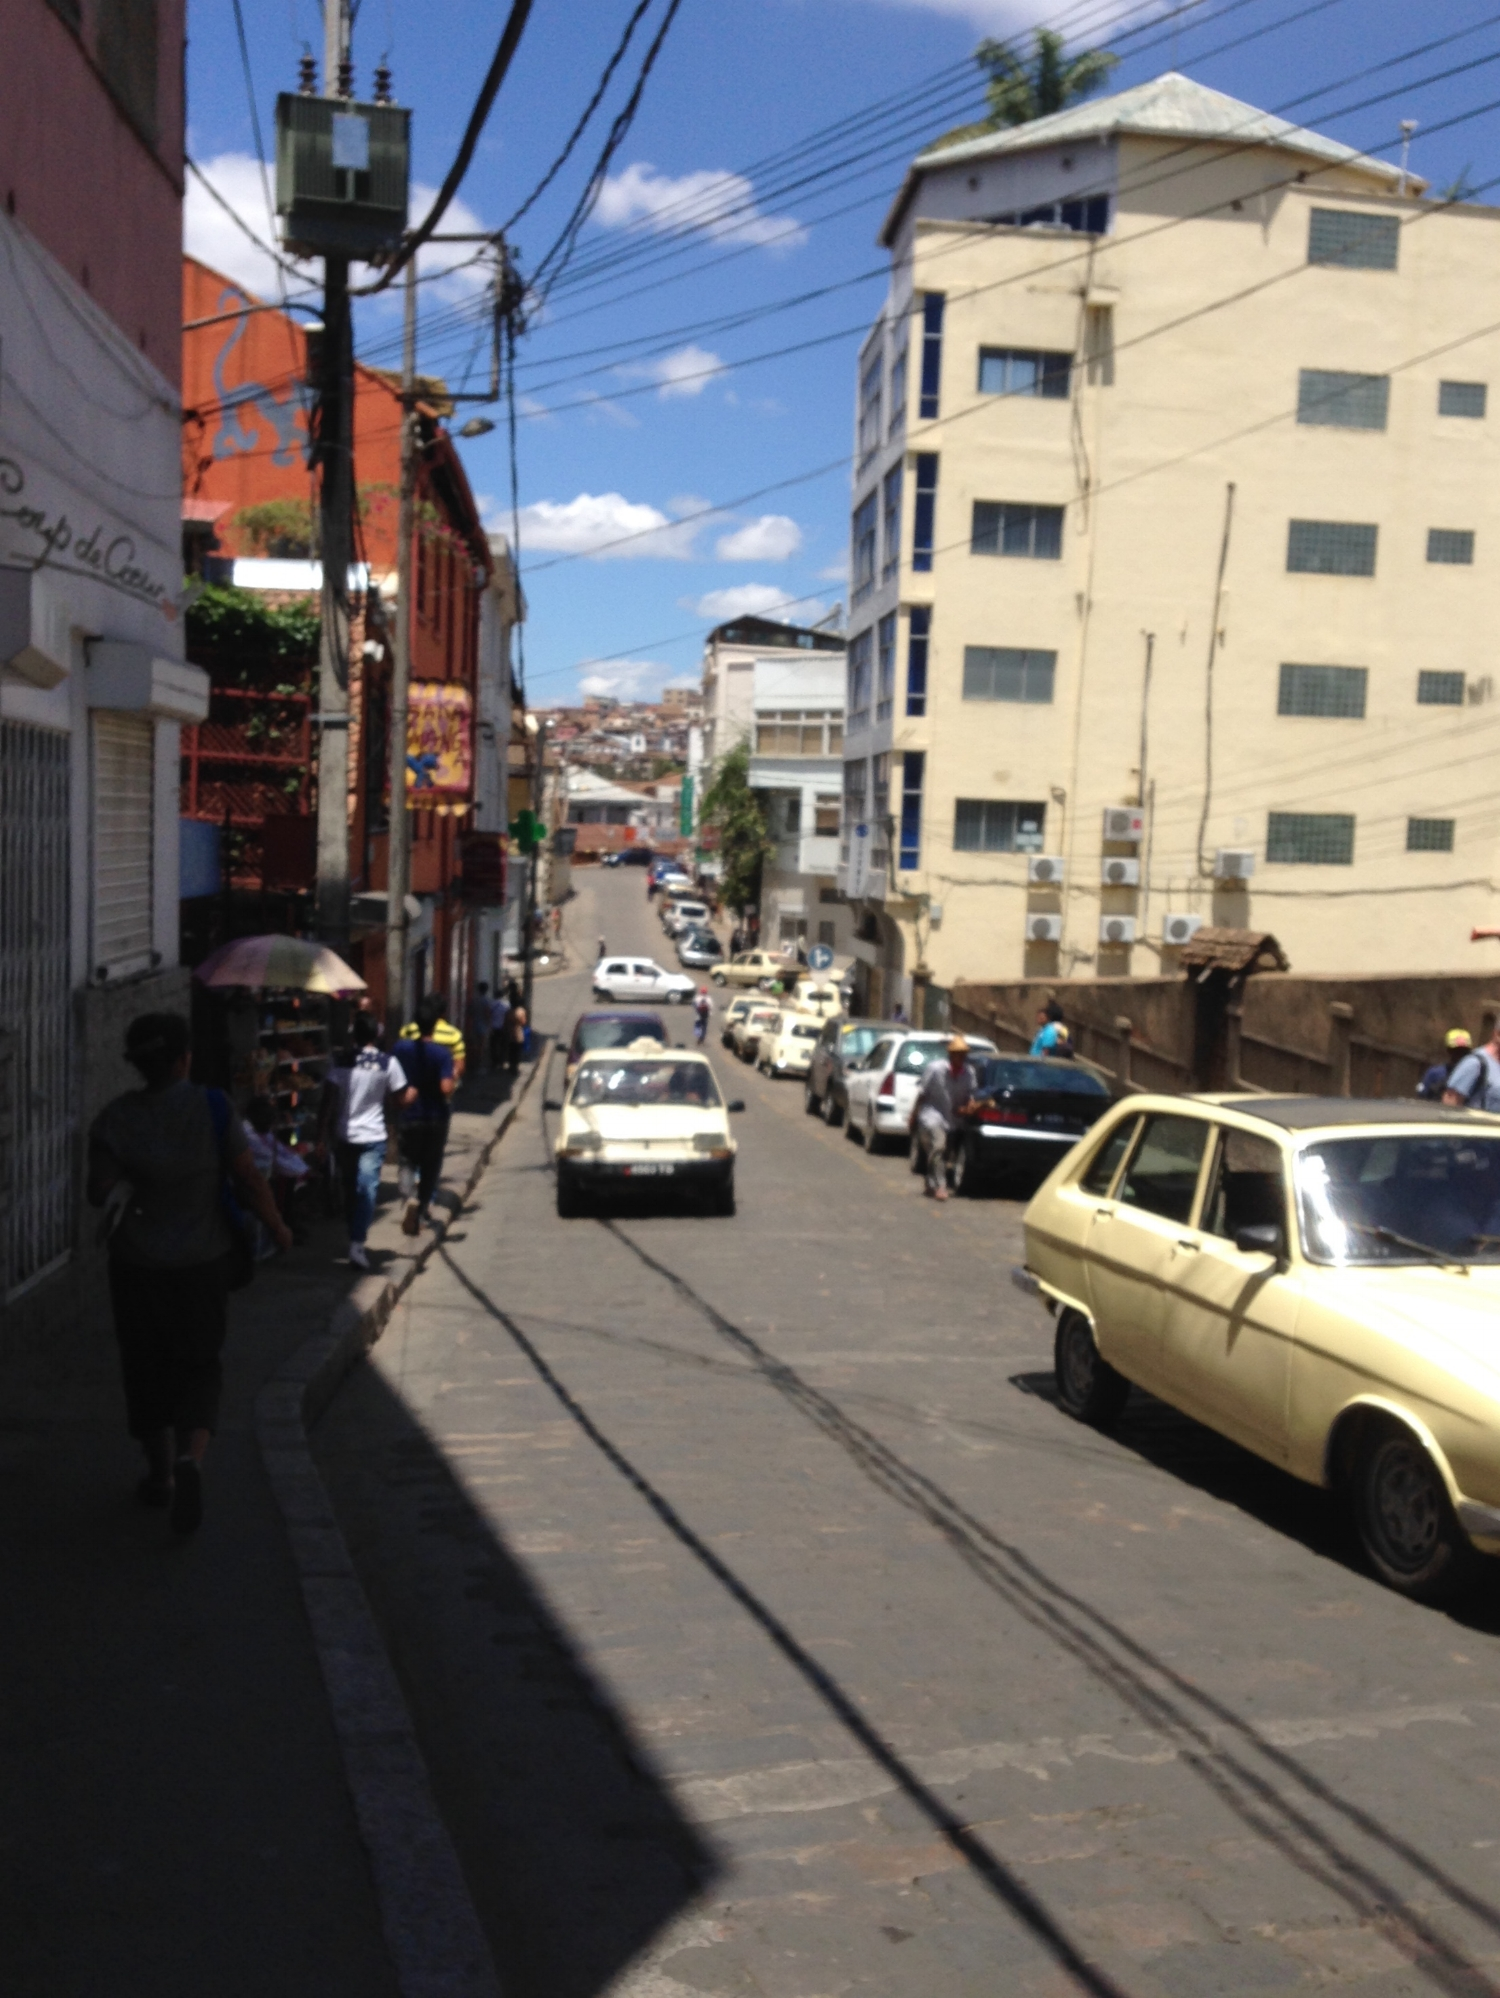 Street scene in Ampasamadinika, as downtown climbs off the Avenue